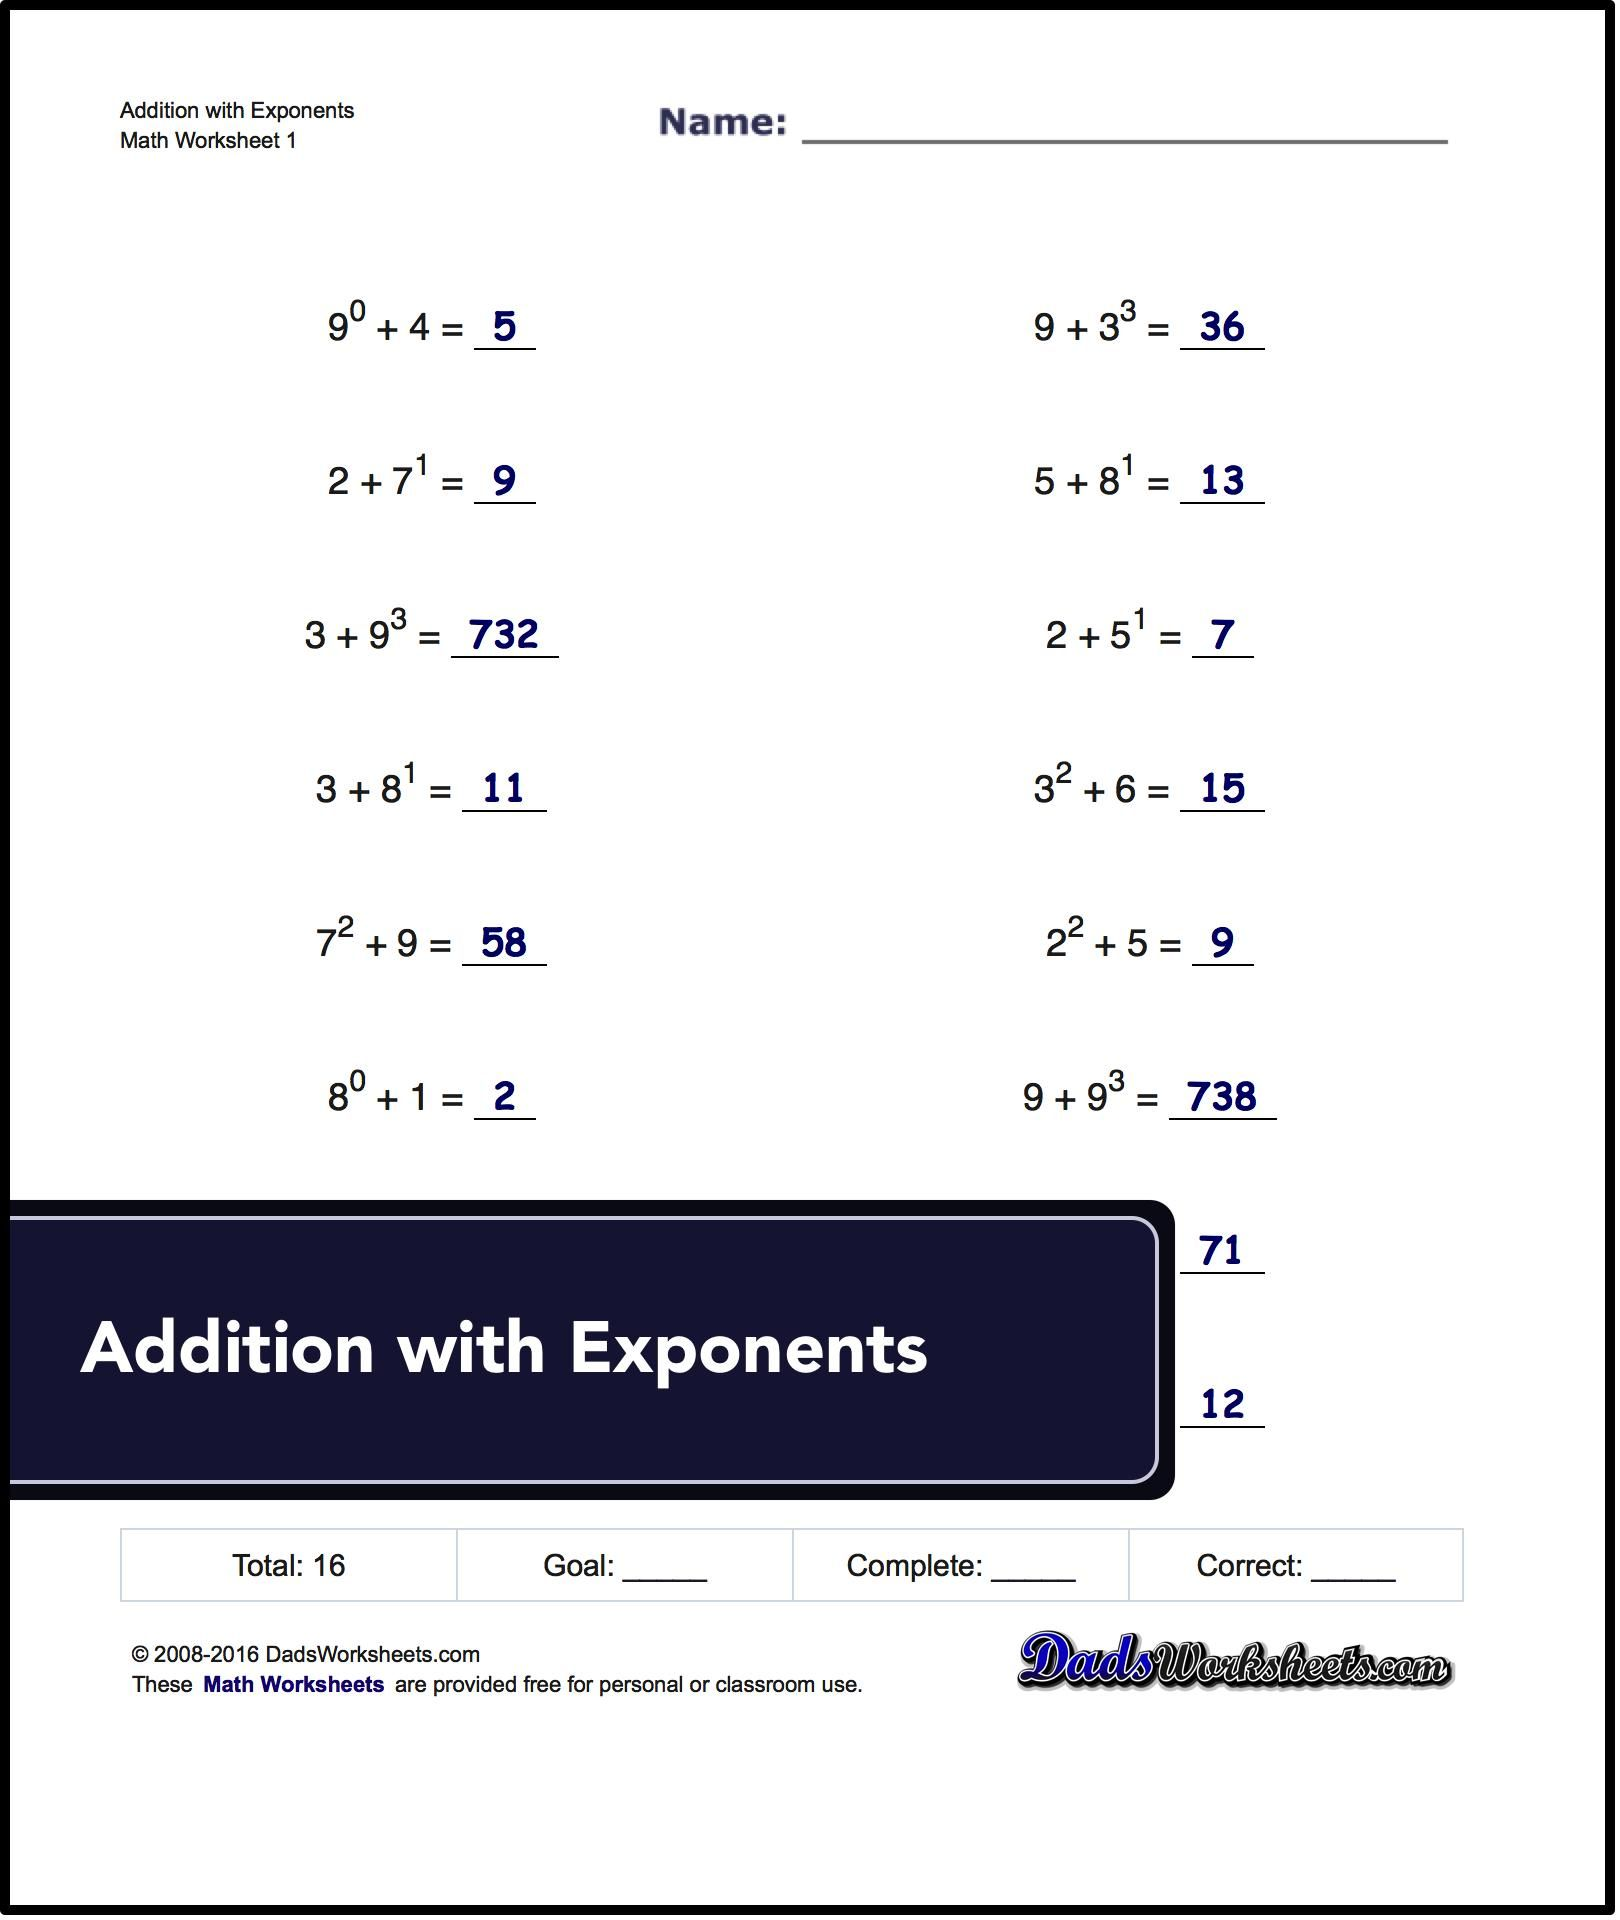 worksheet Order Of Operations Worksheets With Exponents adding exponents worksheets including simple problems where are combined and order of operations rules